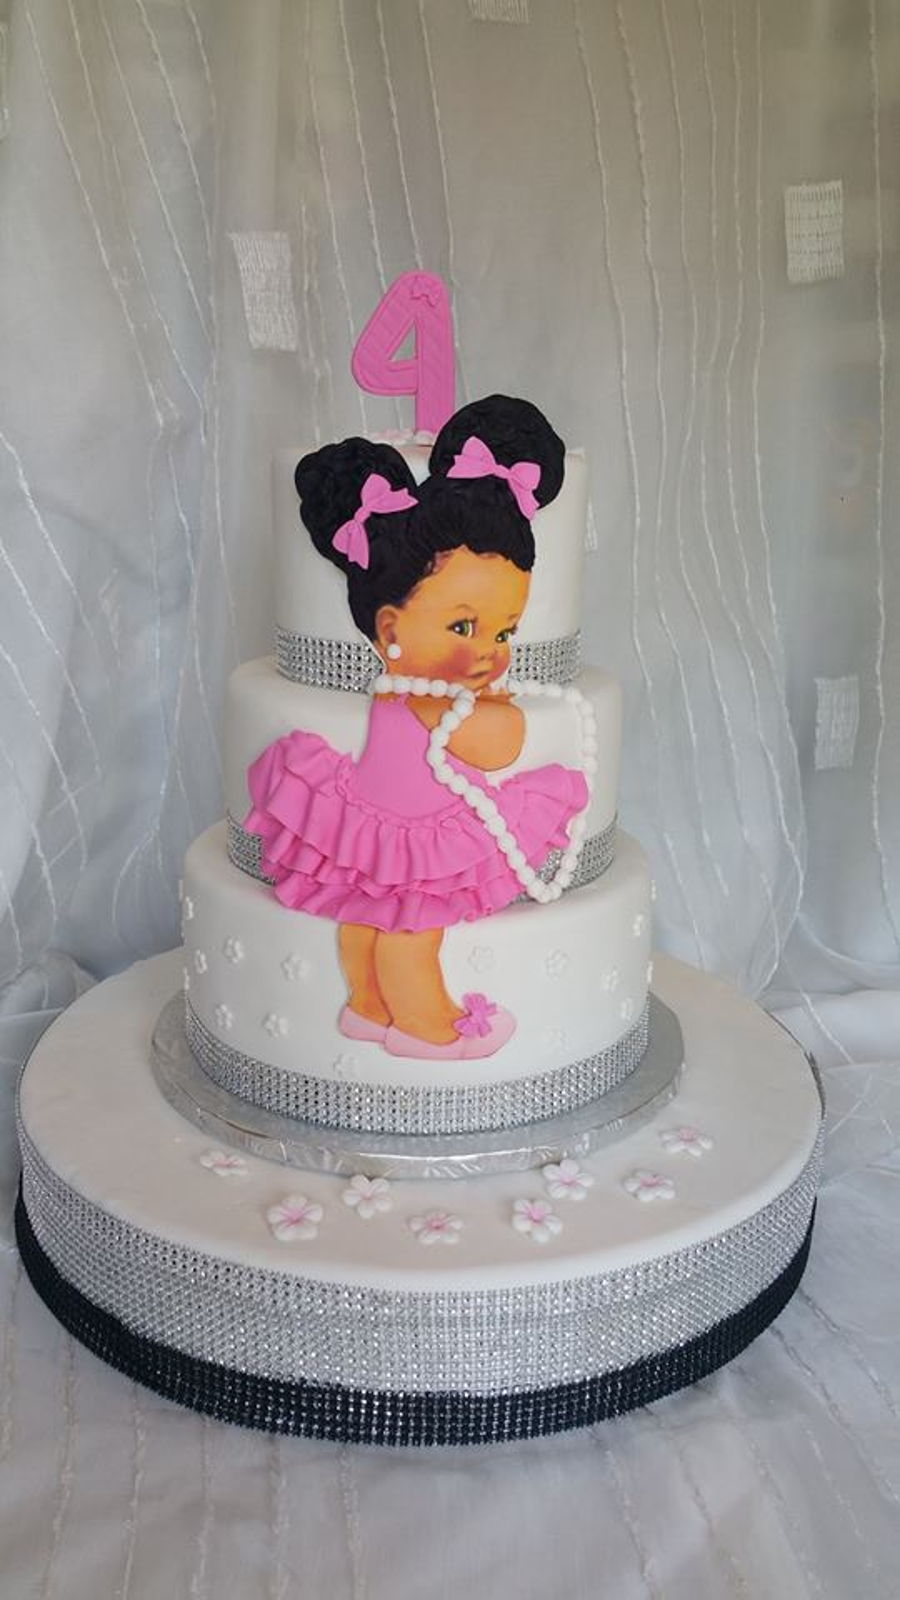 Awe Inspiring African American Girl Cake Cakecentral Com Personalised Birthday Cards Paralily Jamesorg